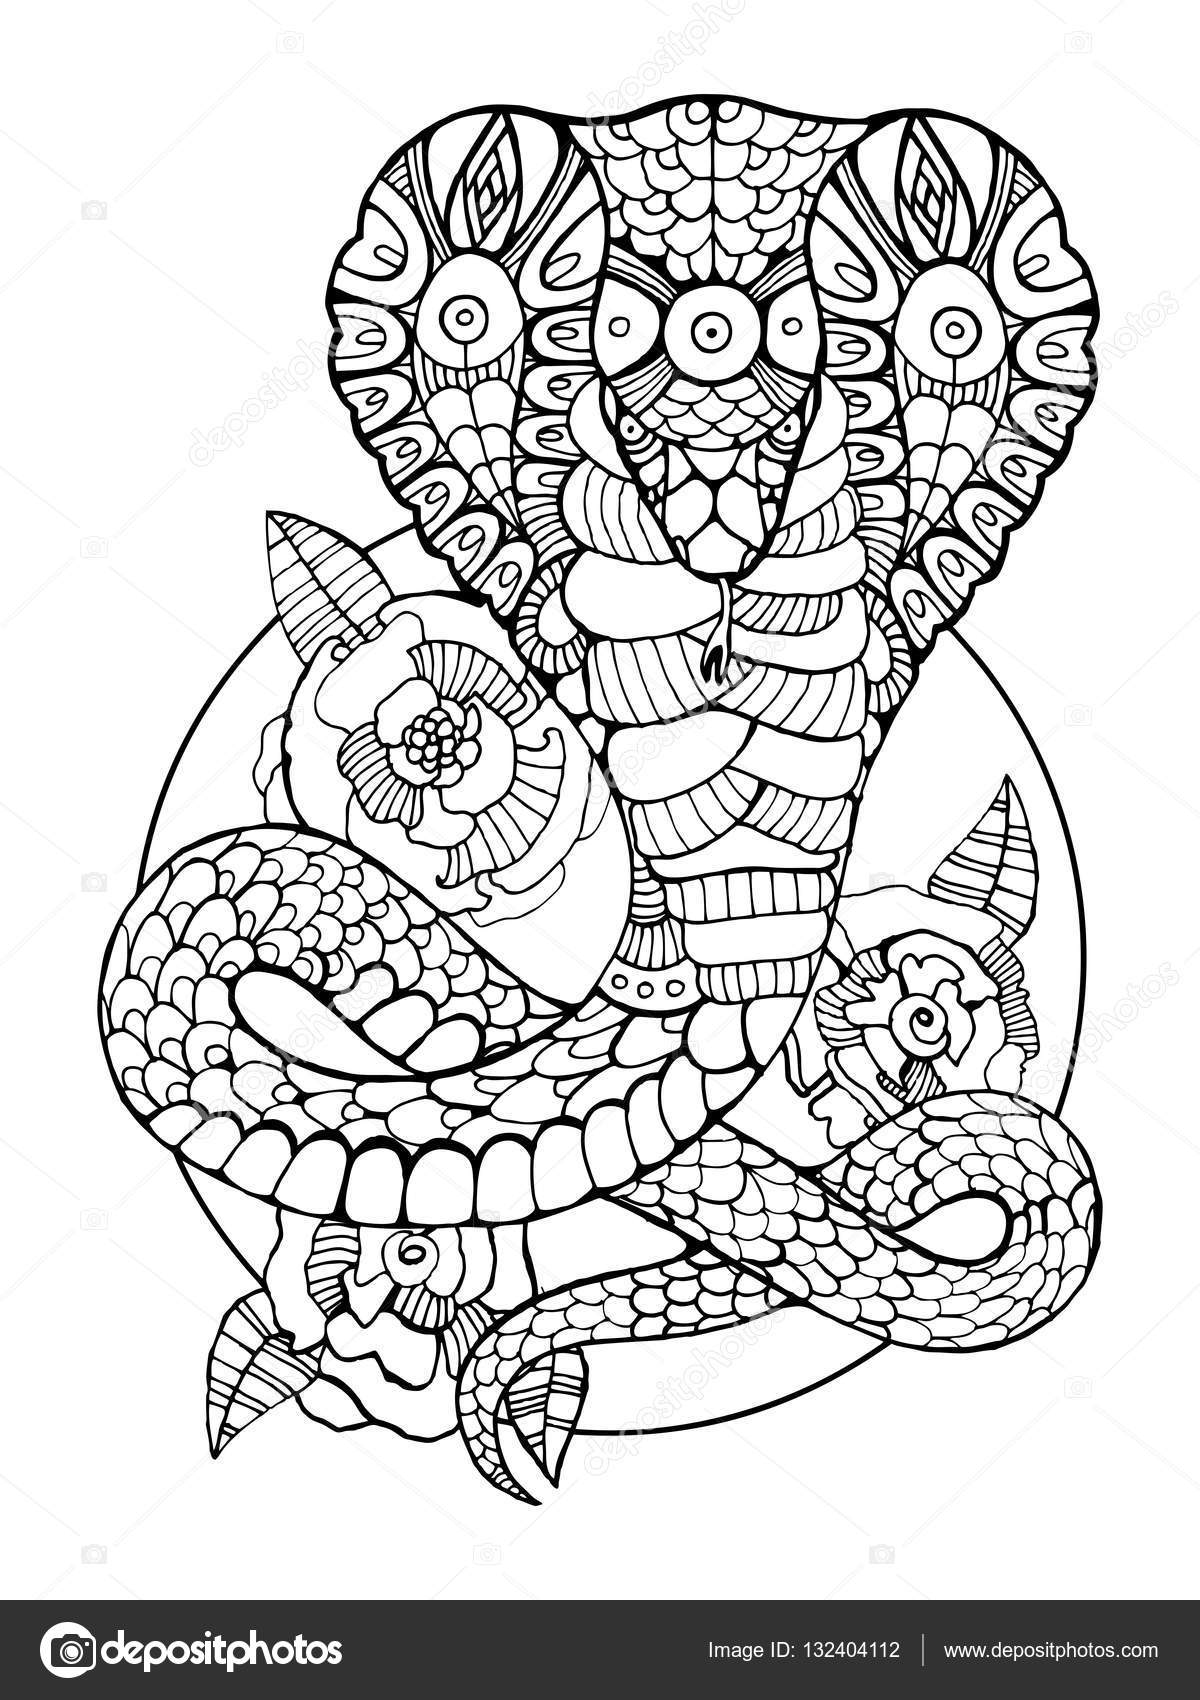 912a9d59c60077aab37deb5e51a16a77 besides Desenhos Para Tatuagem De Coracao also Sleepingbeautycoloring3 further Stock Illustration Cobra Snake Coloring Book For furthermore Gun Coloring Pages. on rose coloring pages